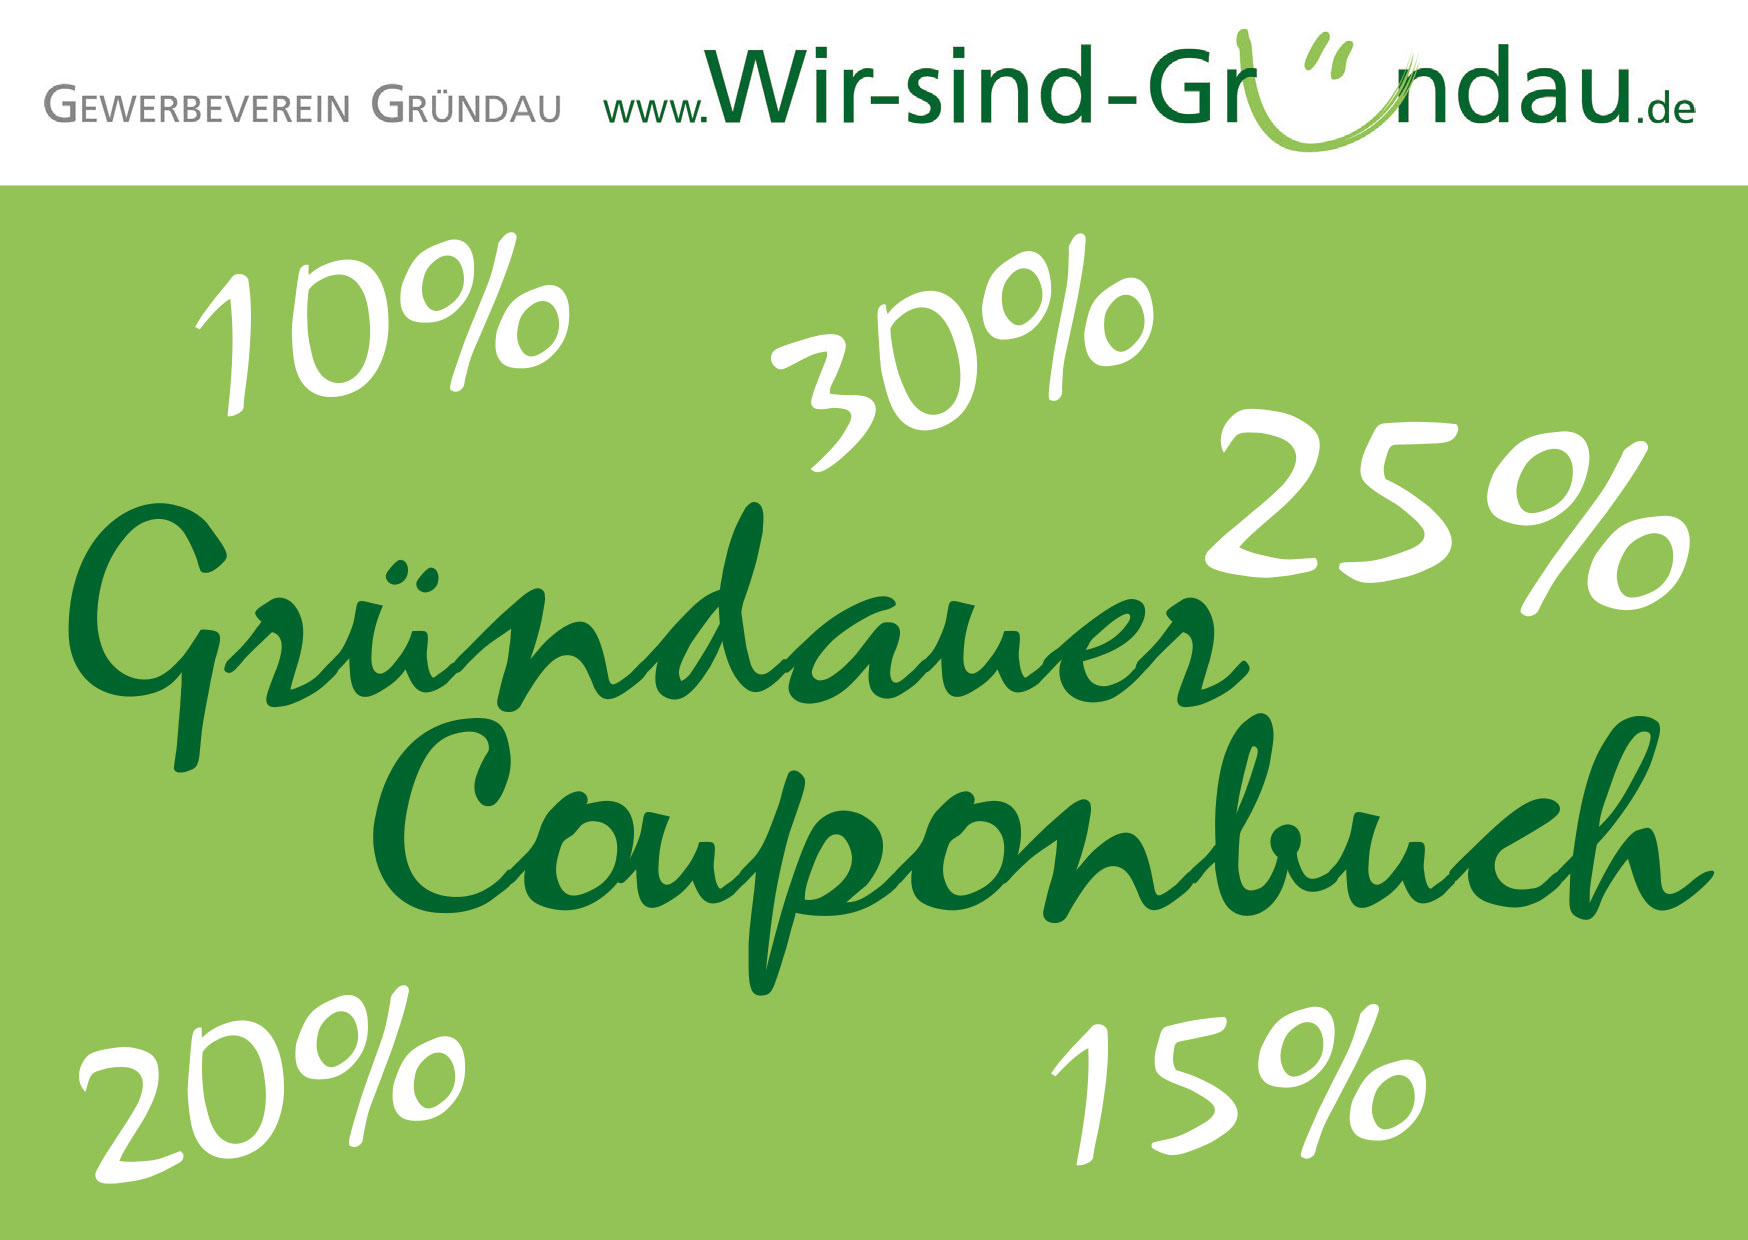 Couponbuch GVG 2017